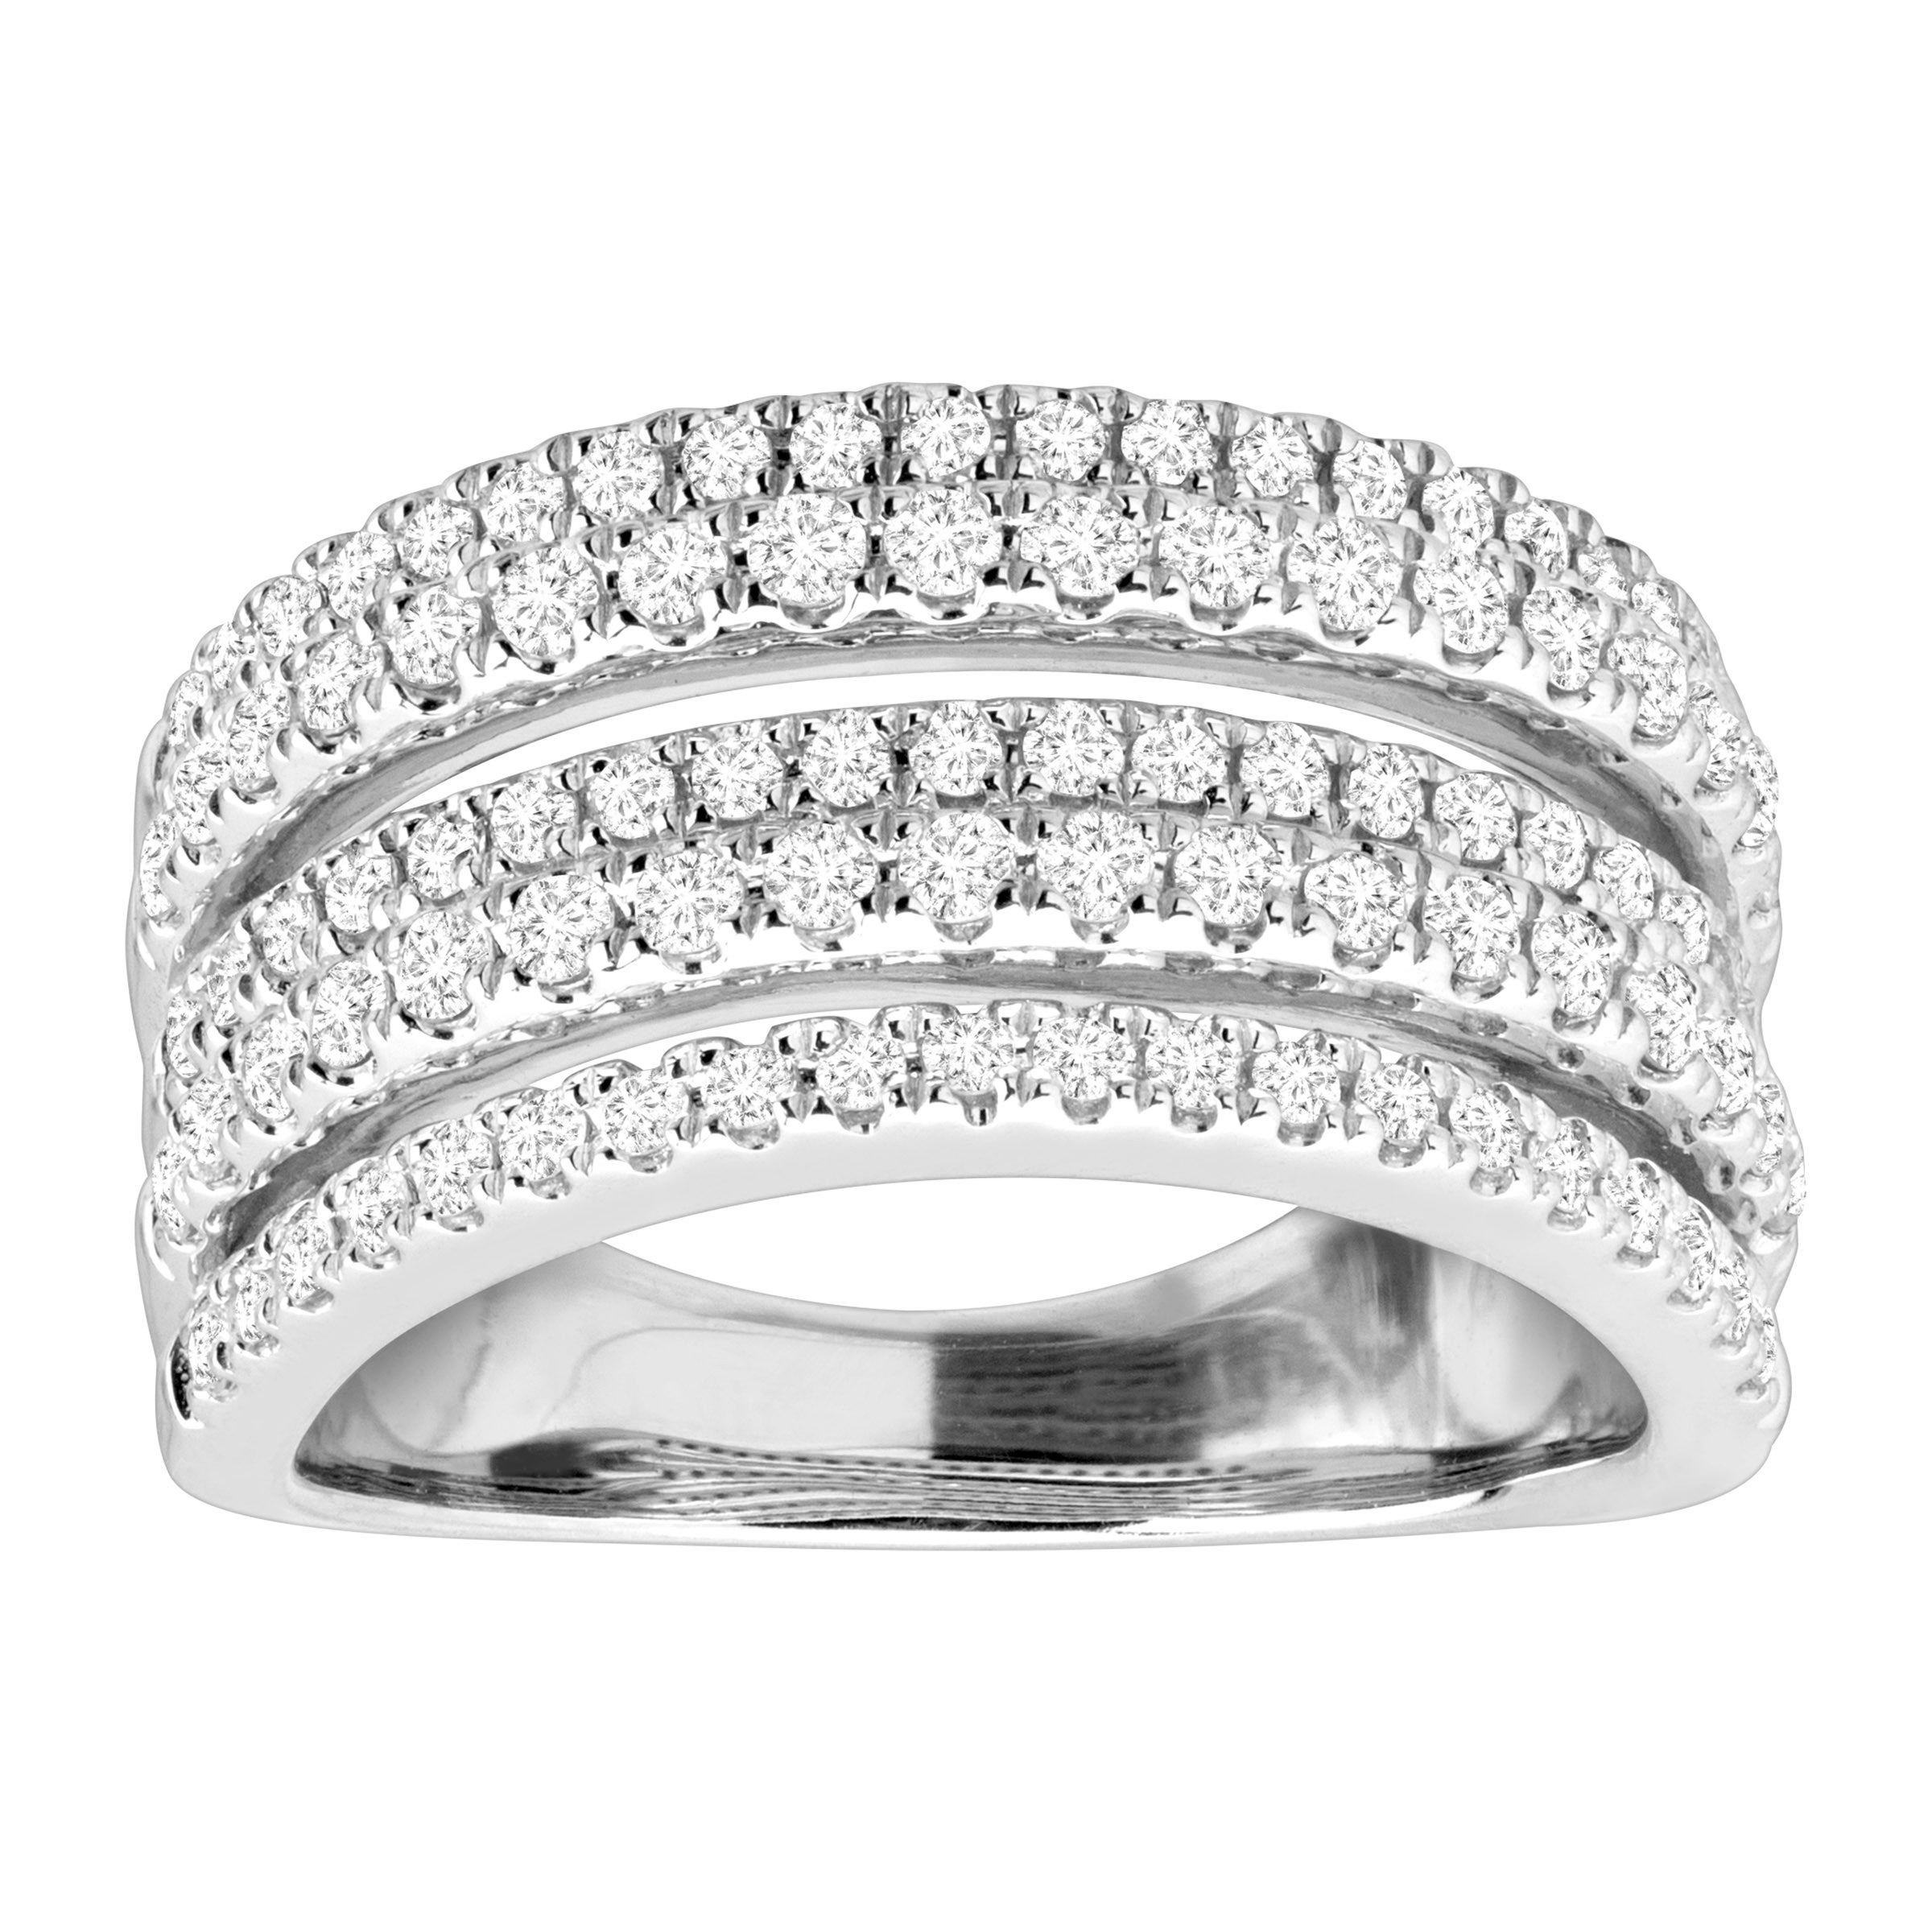 1 Ct Diamond Multi Band Anniversary Ring In 10k White Gold With Regard To Most Recently Released Baguette And Round Diamond Multi Row Anniversary Ring In White Gold (View 11 of 25)